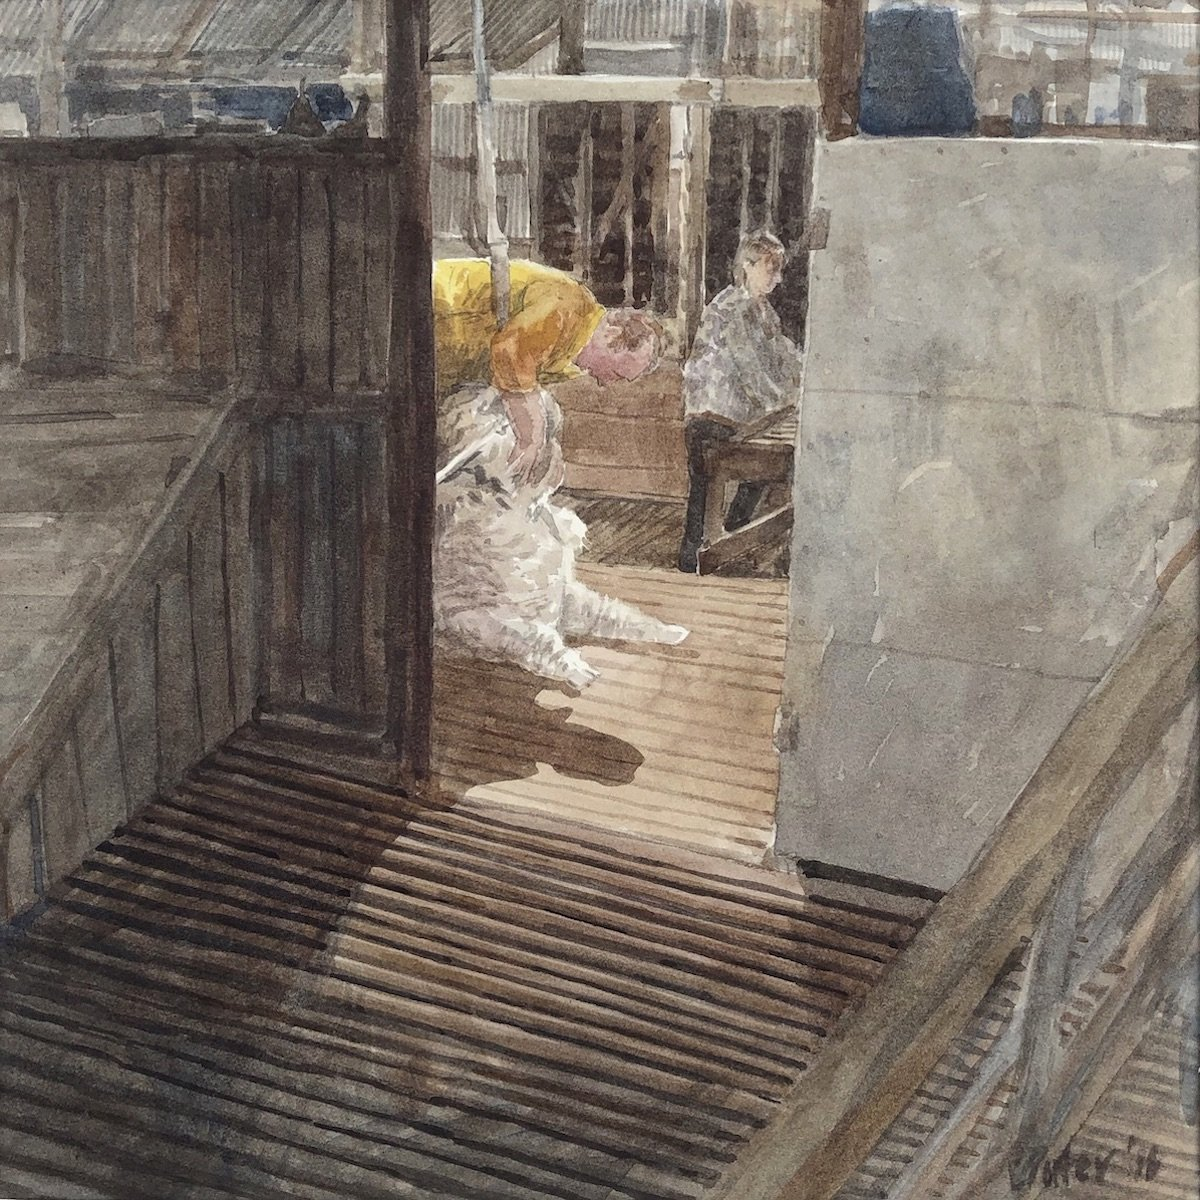 Watercolour painting by Christine Porter showing a shearer in a yellow shirt shearing a ewe as viewed from the pens behind him. In the distance in the woolroom, a woman is classing wool at a wooltable